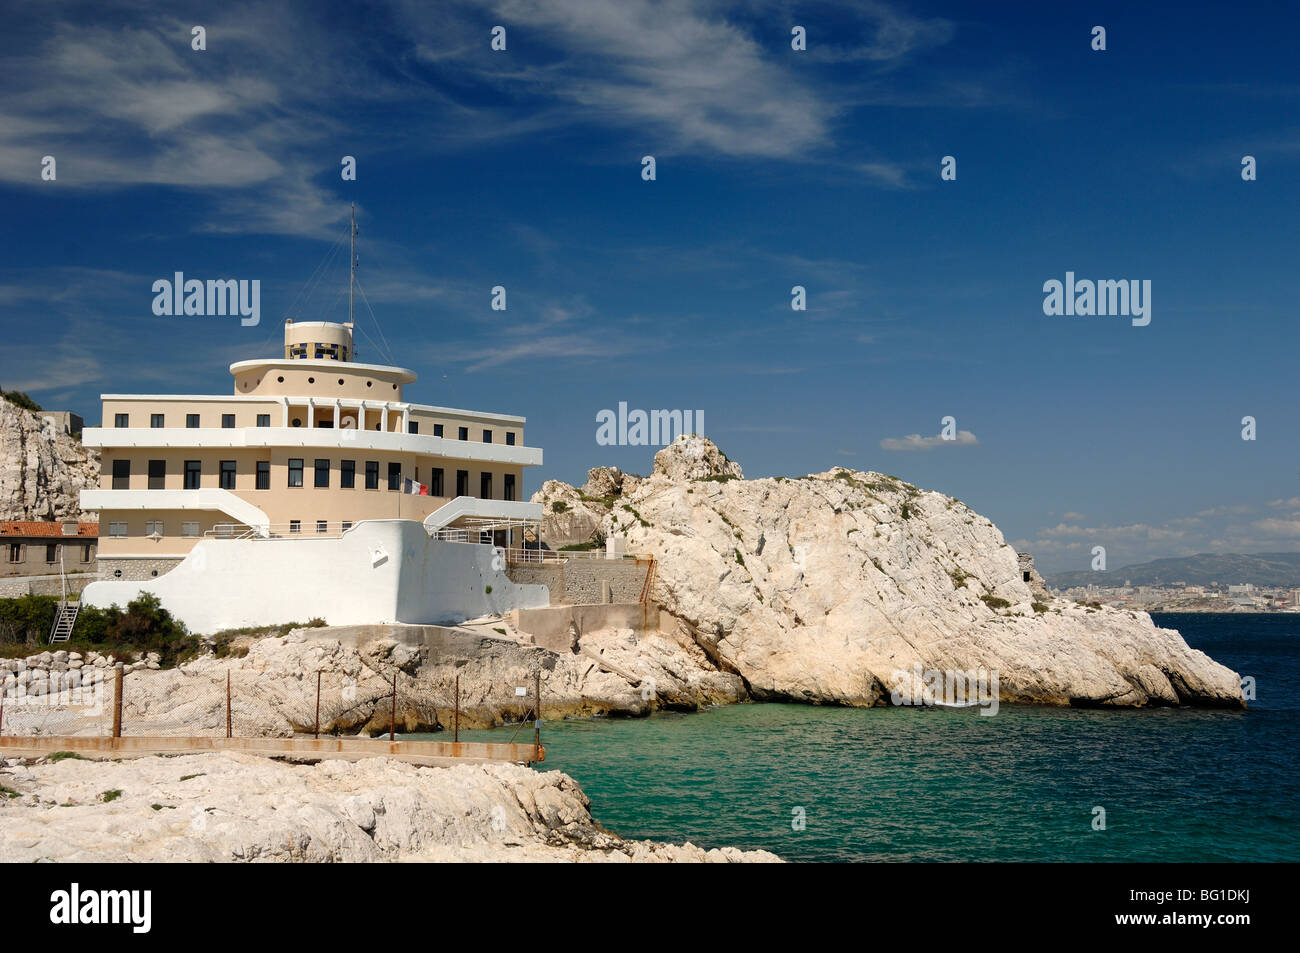 Boat-Shaped Pilotage Station Building in Shape of Ship or Boat, Île Ratonneau Island, Frioul, Marseille Marseilles, Stock Photo